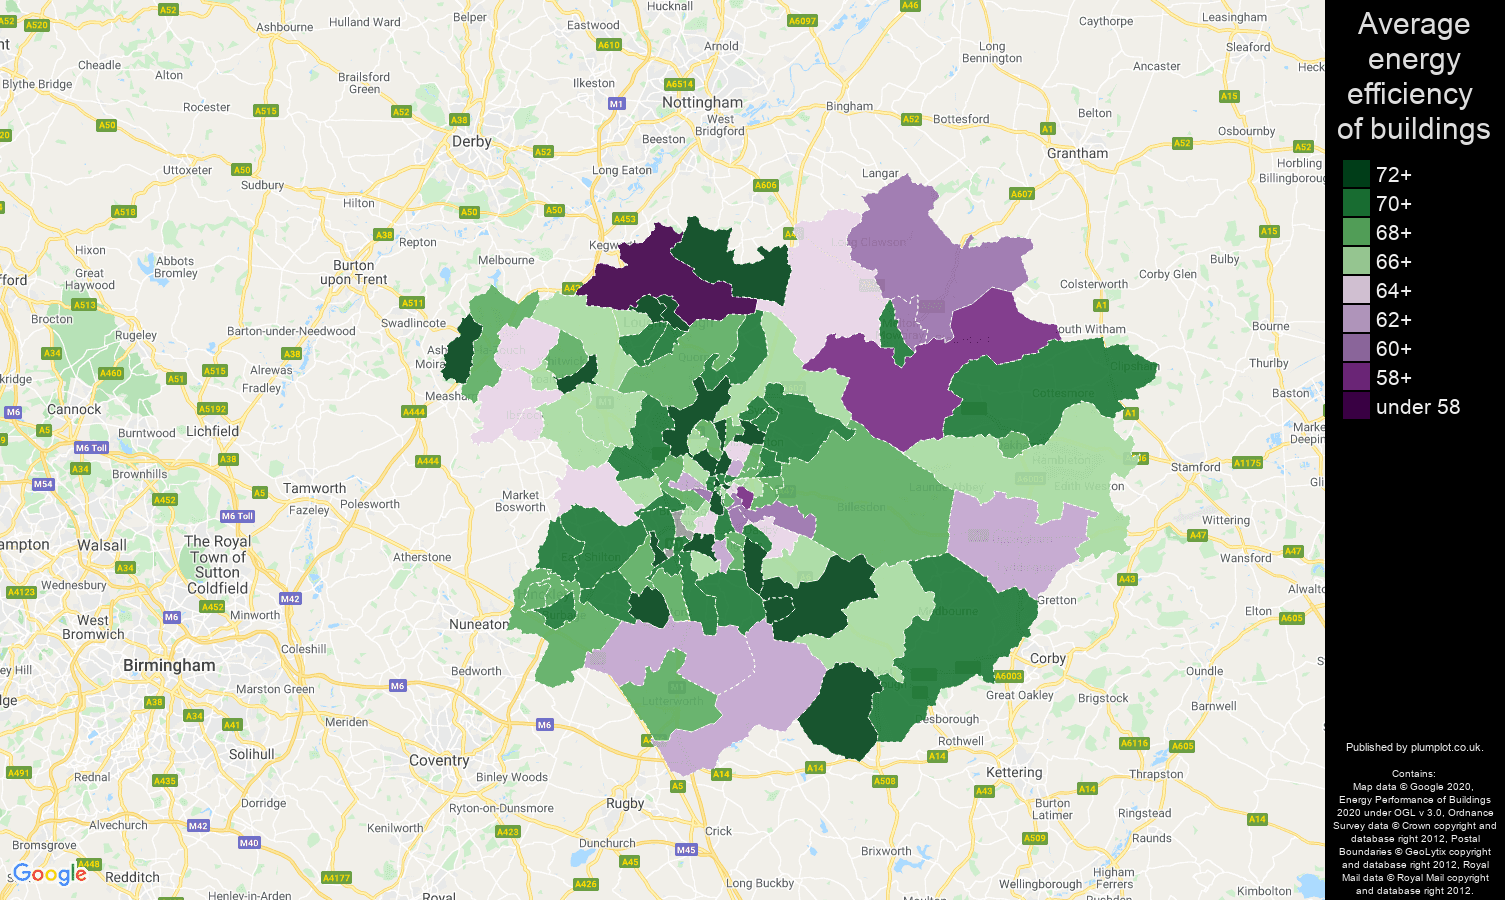 Leicester map of energy efficiency of flats